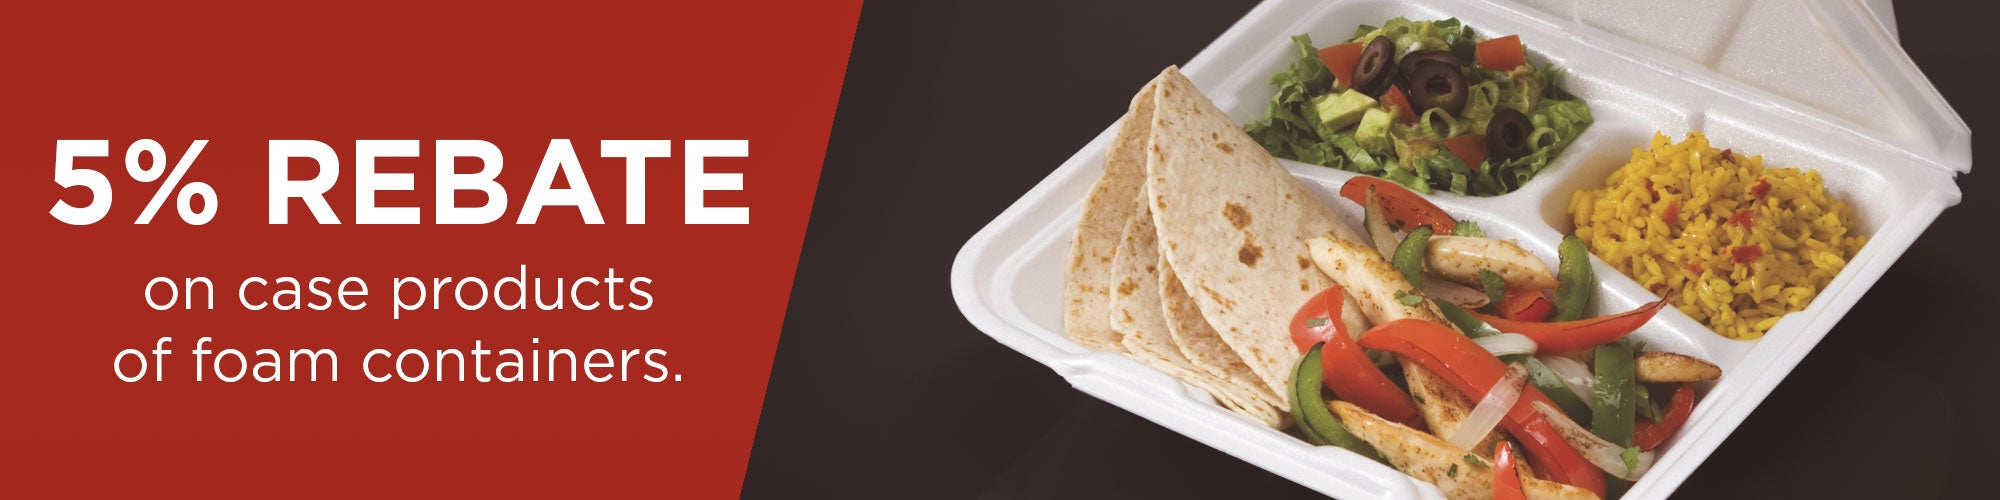 5% Rebate on Foam Containers